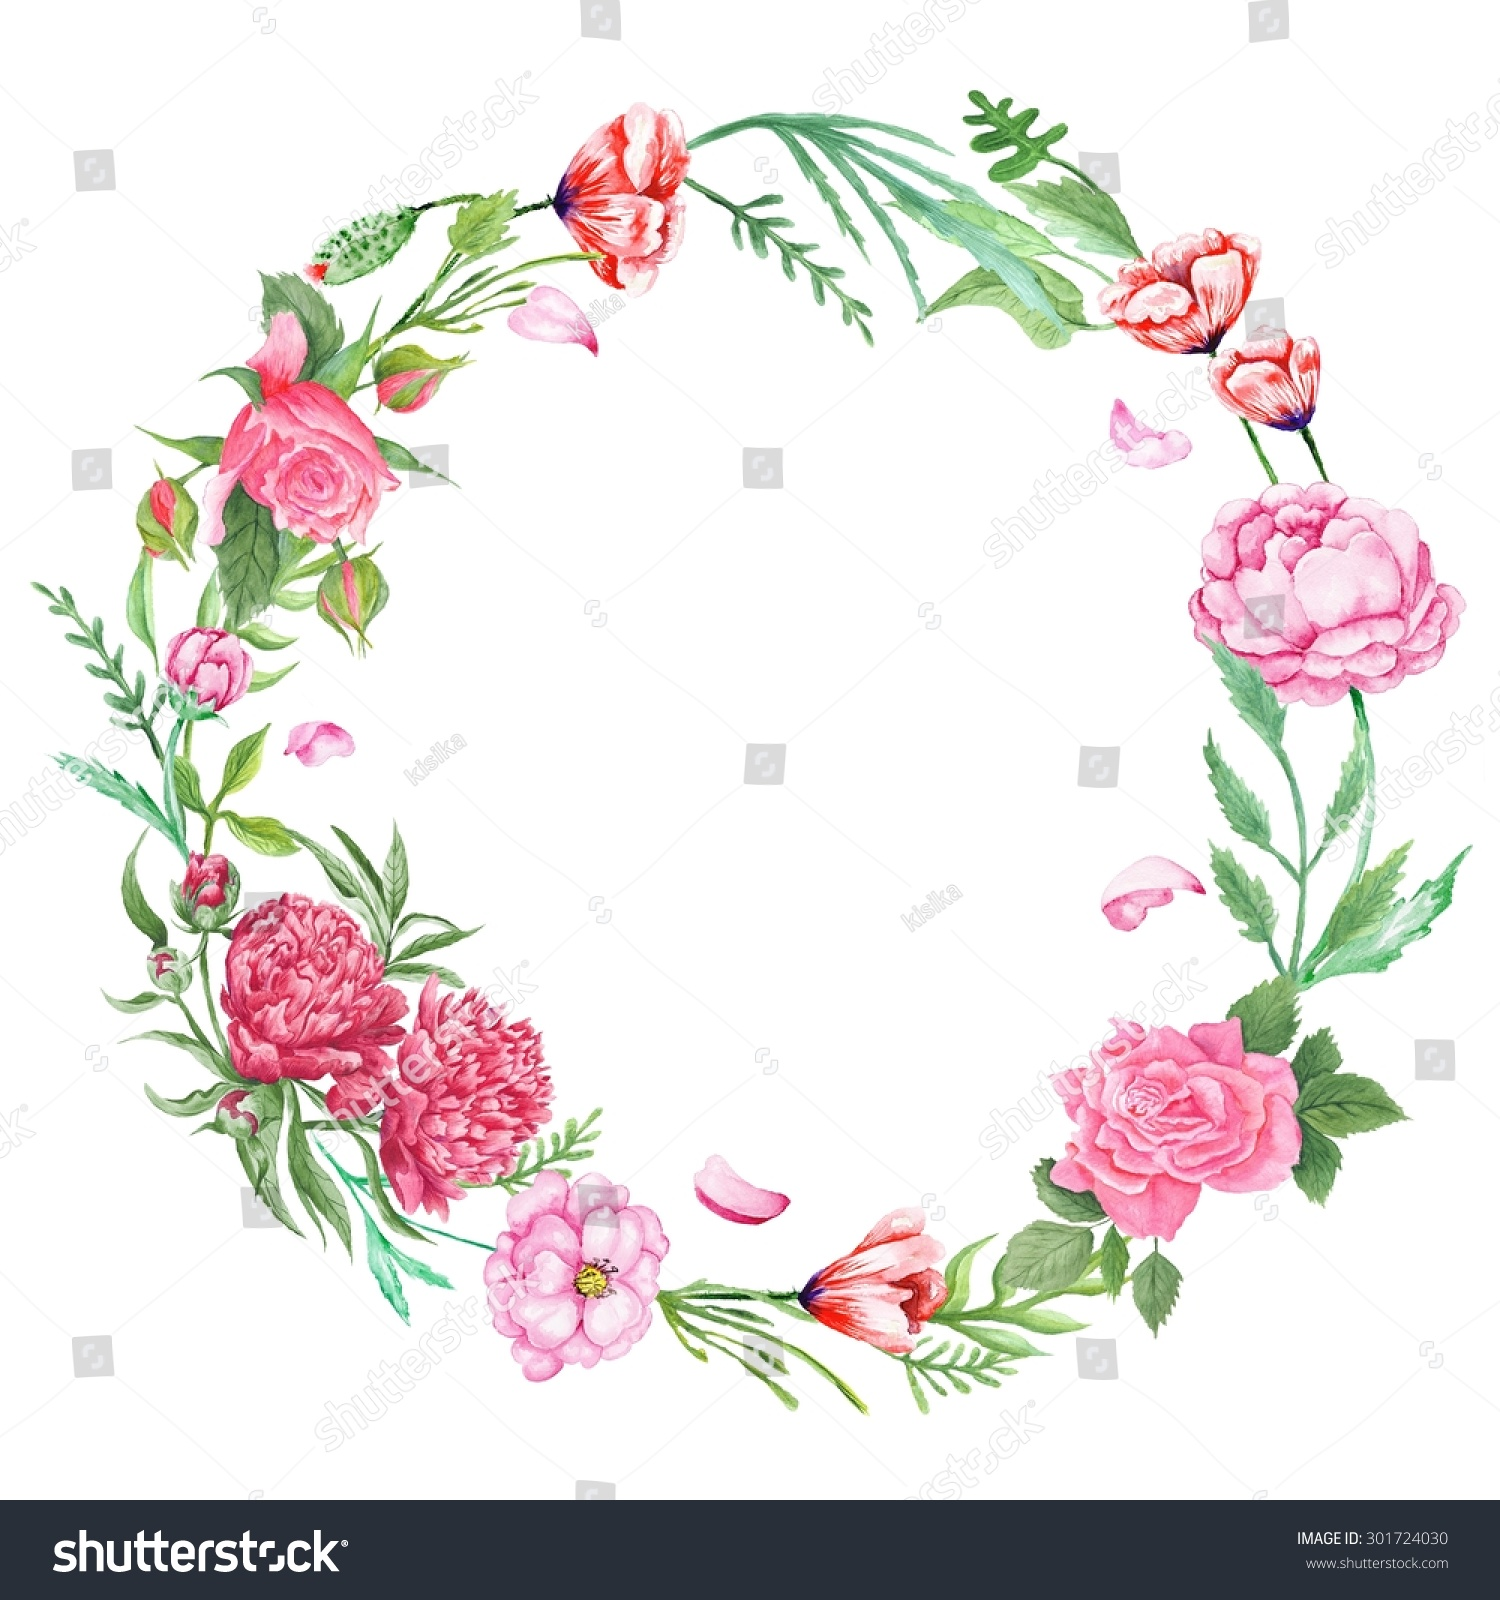 Shabby Chic Floral Wreath Handpainted Watercolor Stock Illustration ...